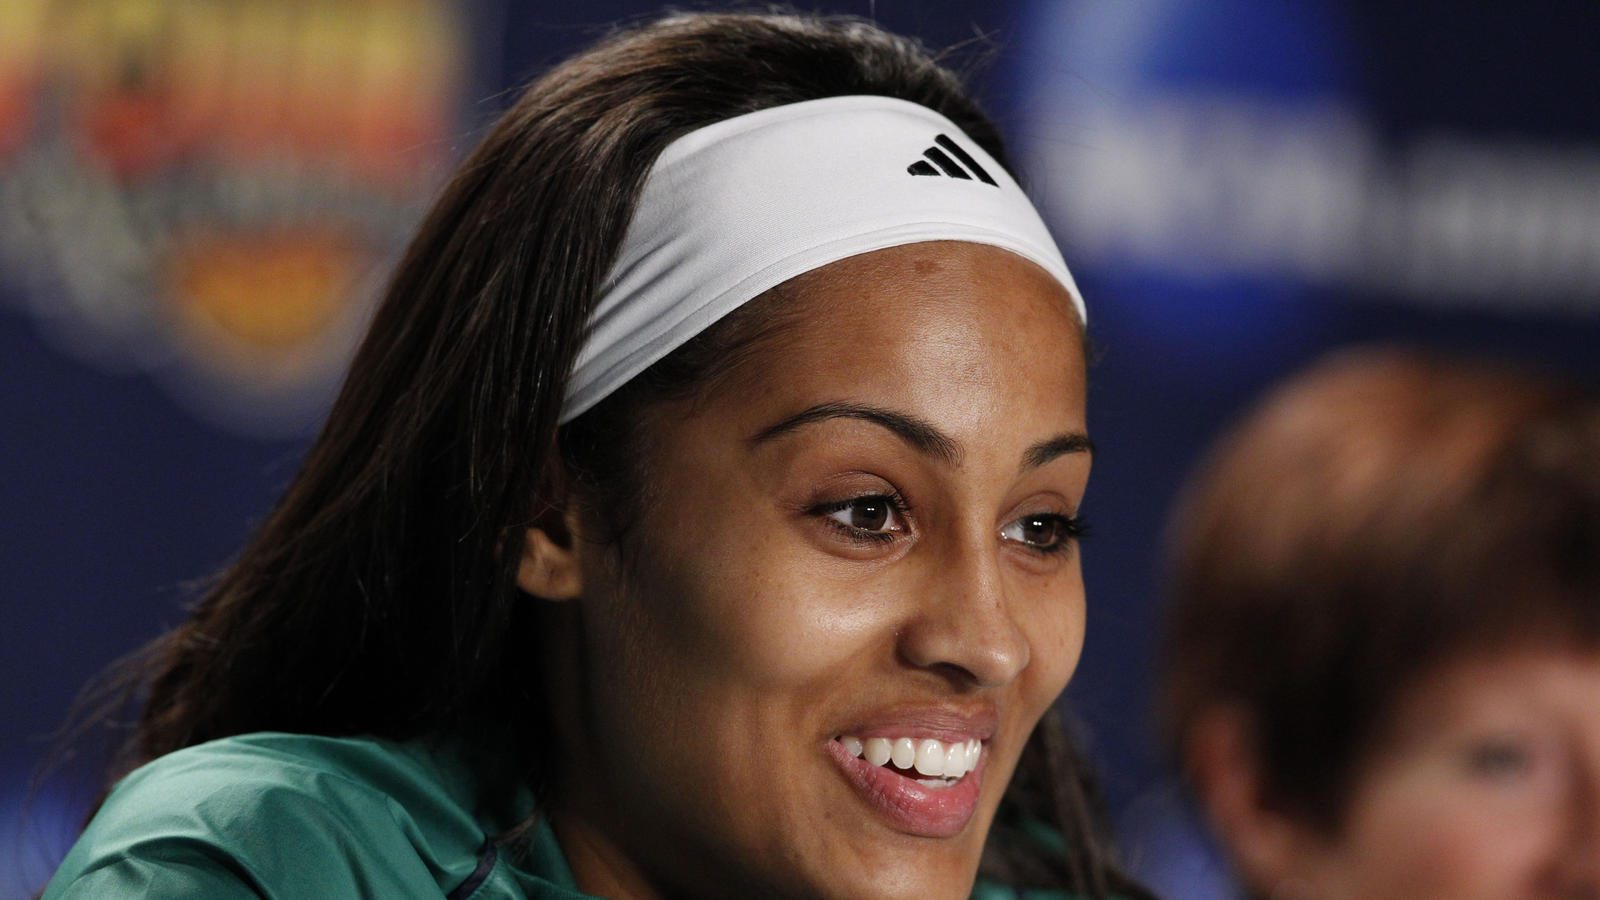 WNBA star Skylar Diggins-Smith upset with the minimal support received from the league during her pregnancy